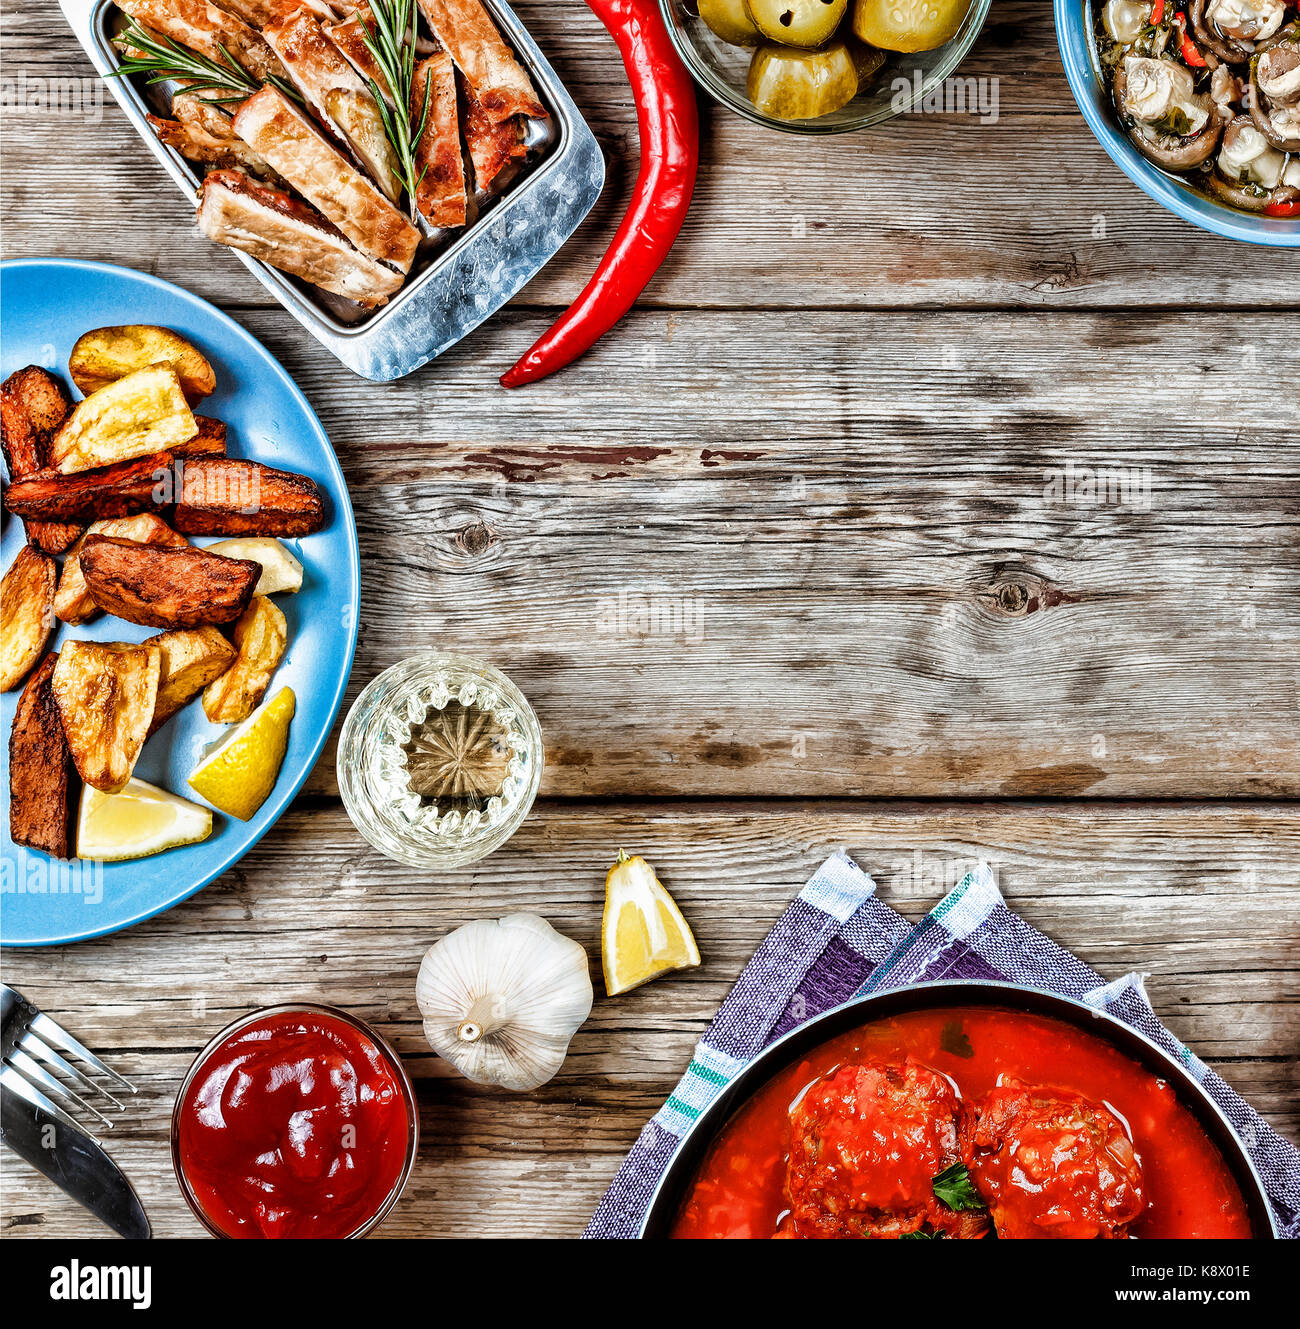 Dining Table With A Variety Of Meals And Snacks Meatballs Baked Potato Wedges Meat Mushrooms Ketchup Wooden Background Top View Rustic Style